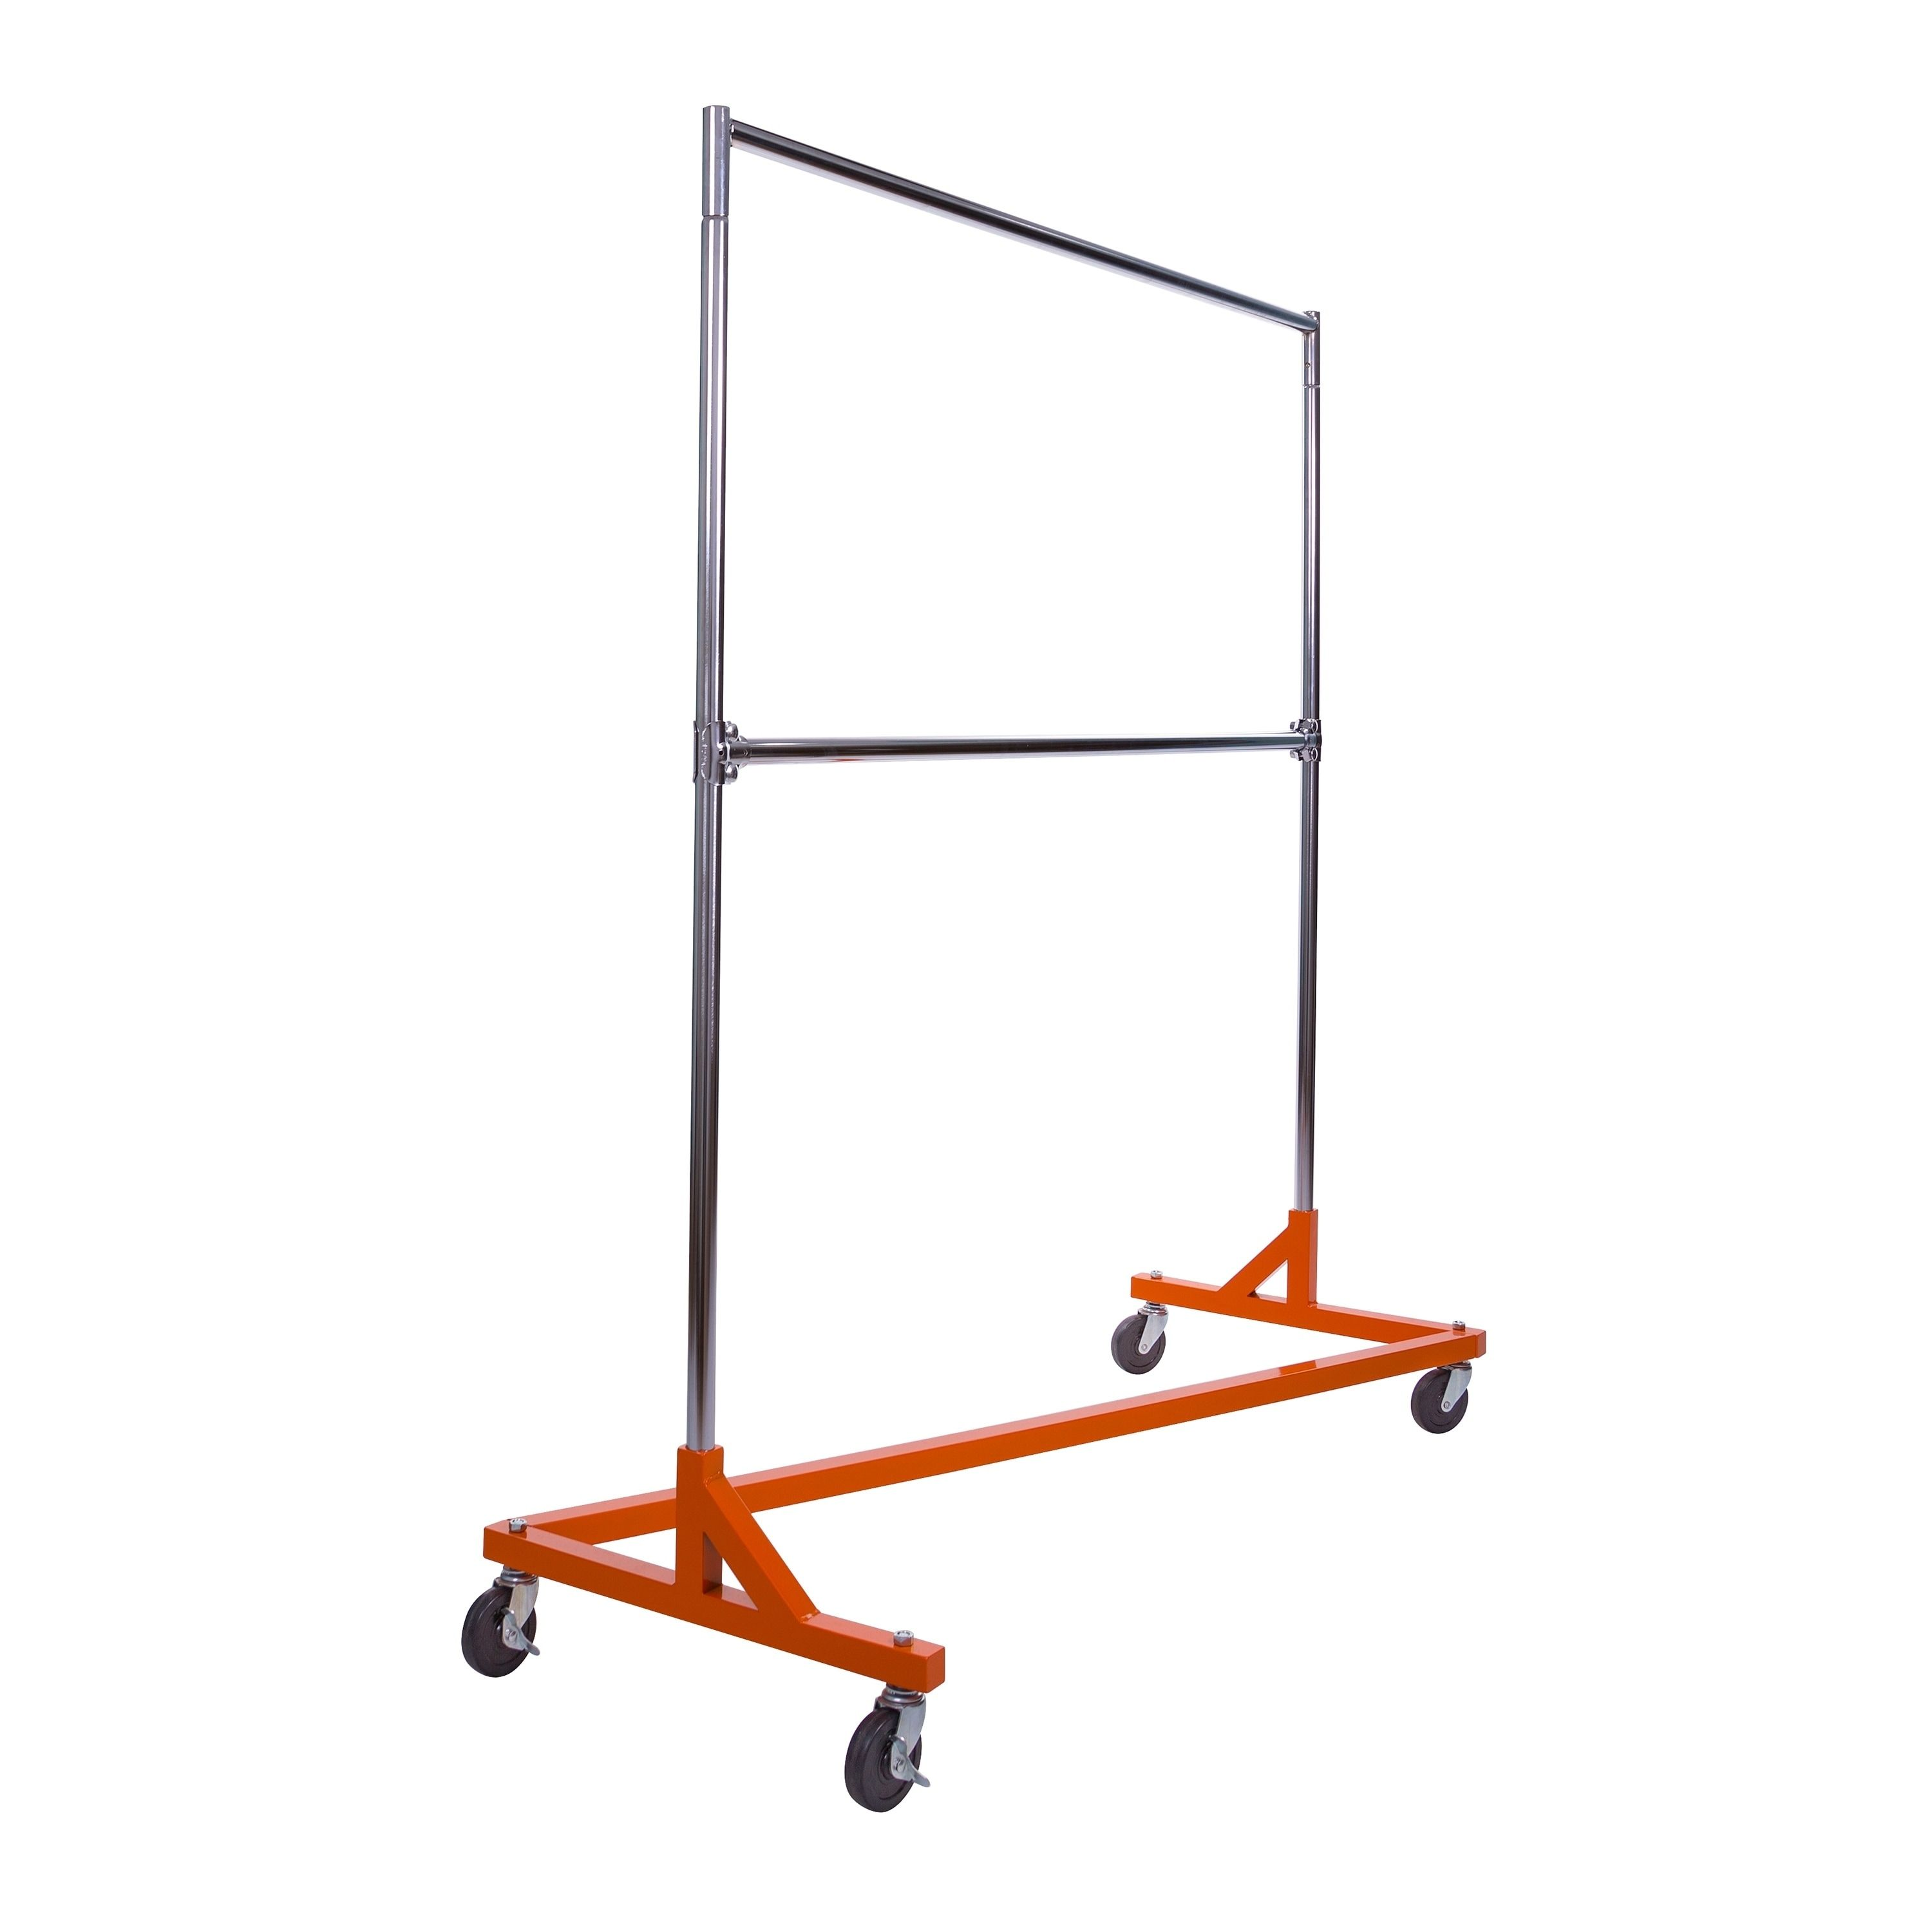 Econoco Rolling Garment Rack With Orange Z Base Chrome Hangrail And Uprights And Add On Hangrail Included Garment Racks Declutter Your Home Portable Wardrobe